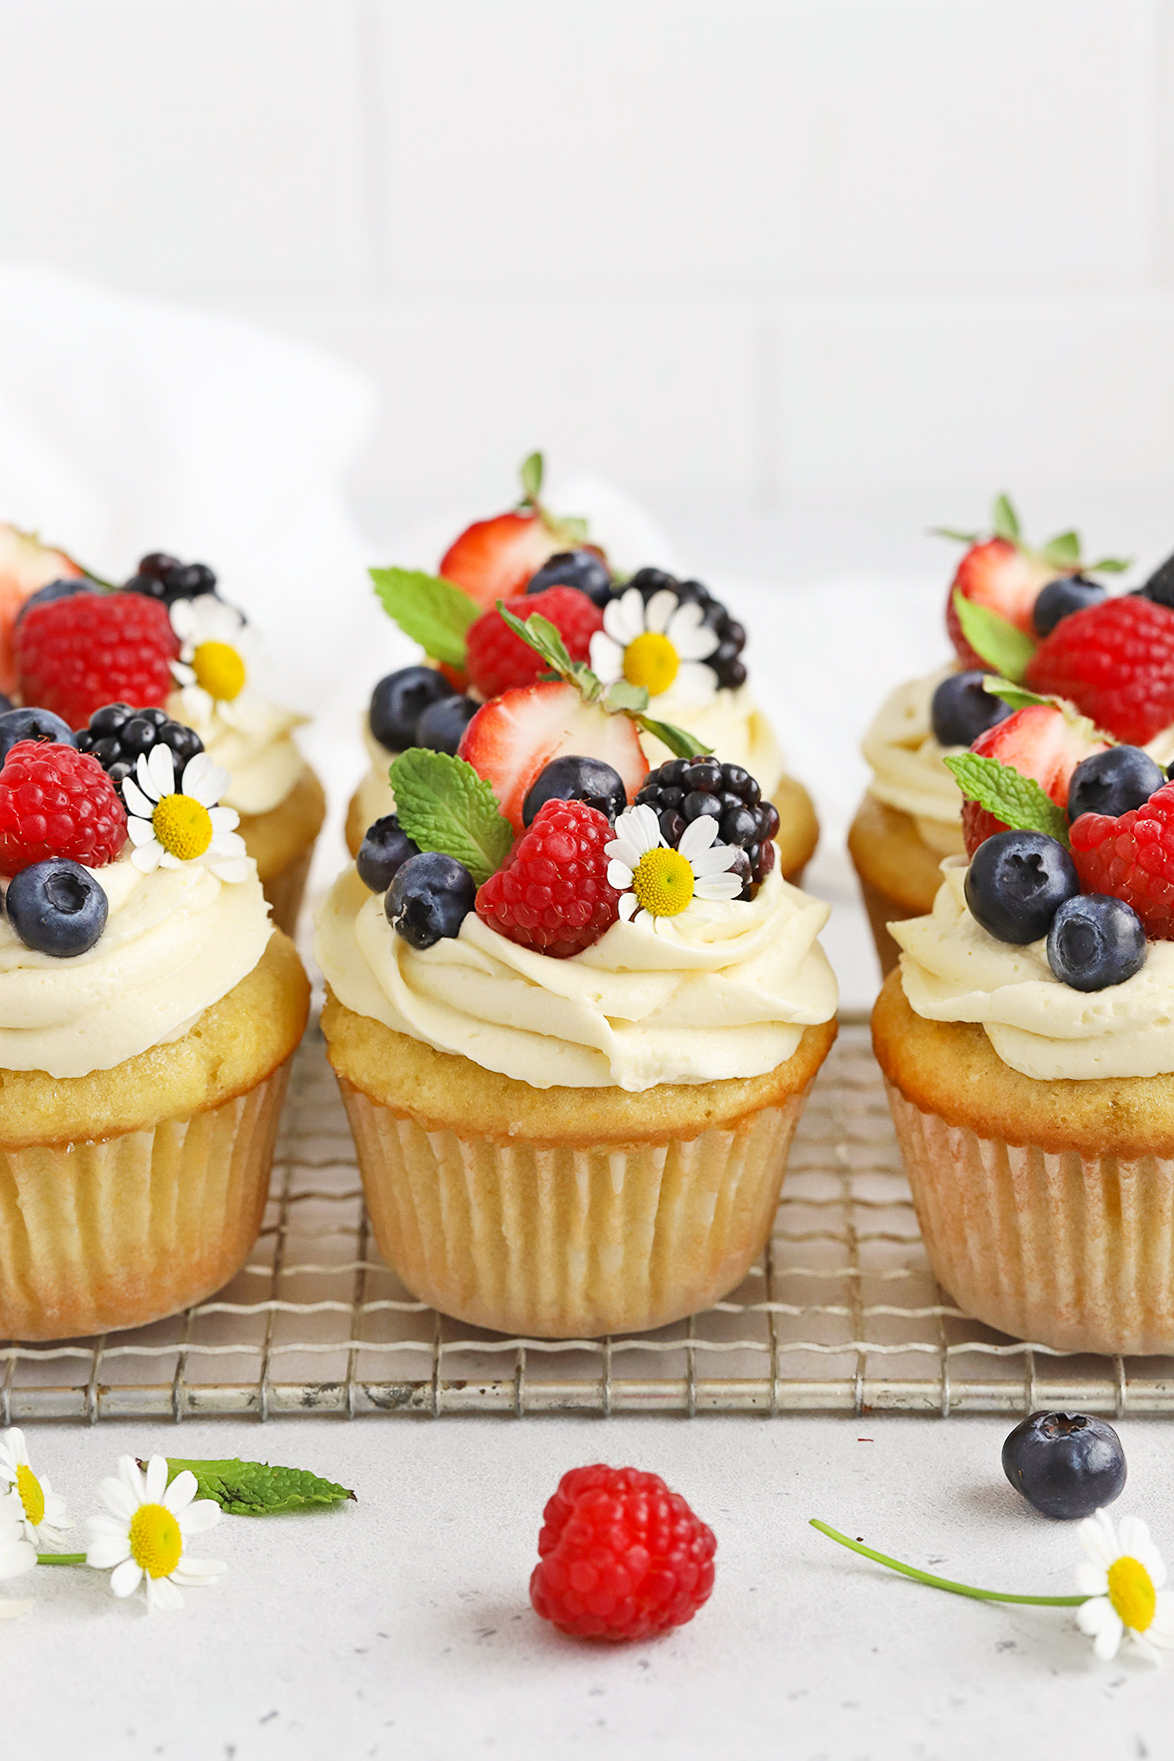 Front view of gluten-free lemon cupcakes with lemon frosting, fresh berries, and edible flowers on a white background